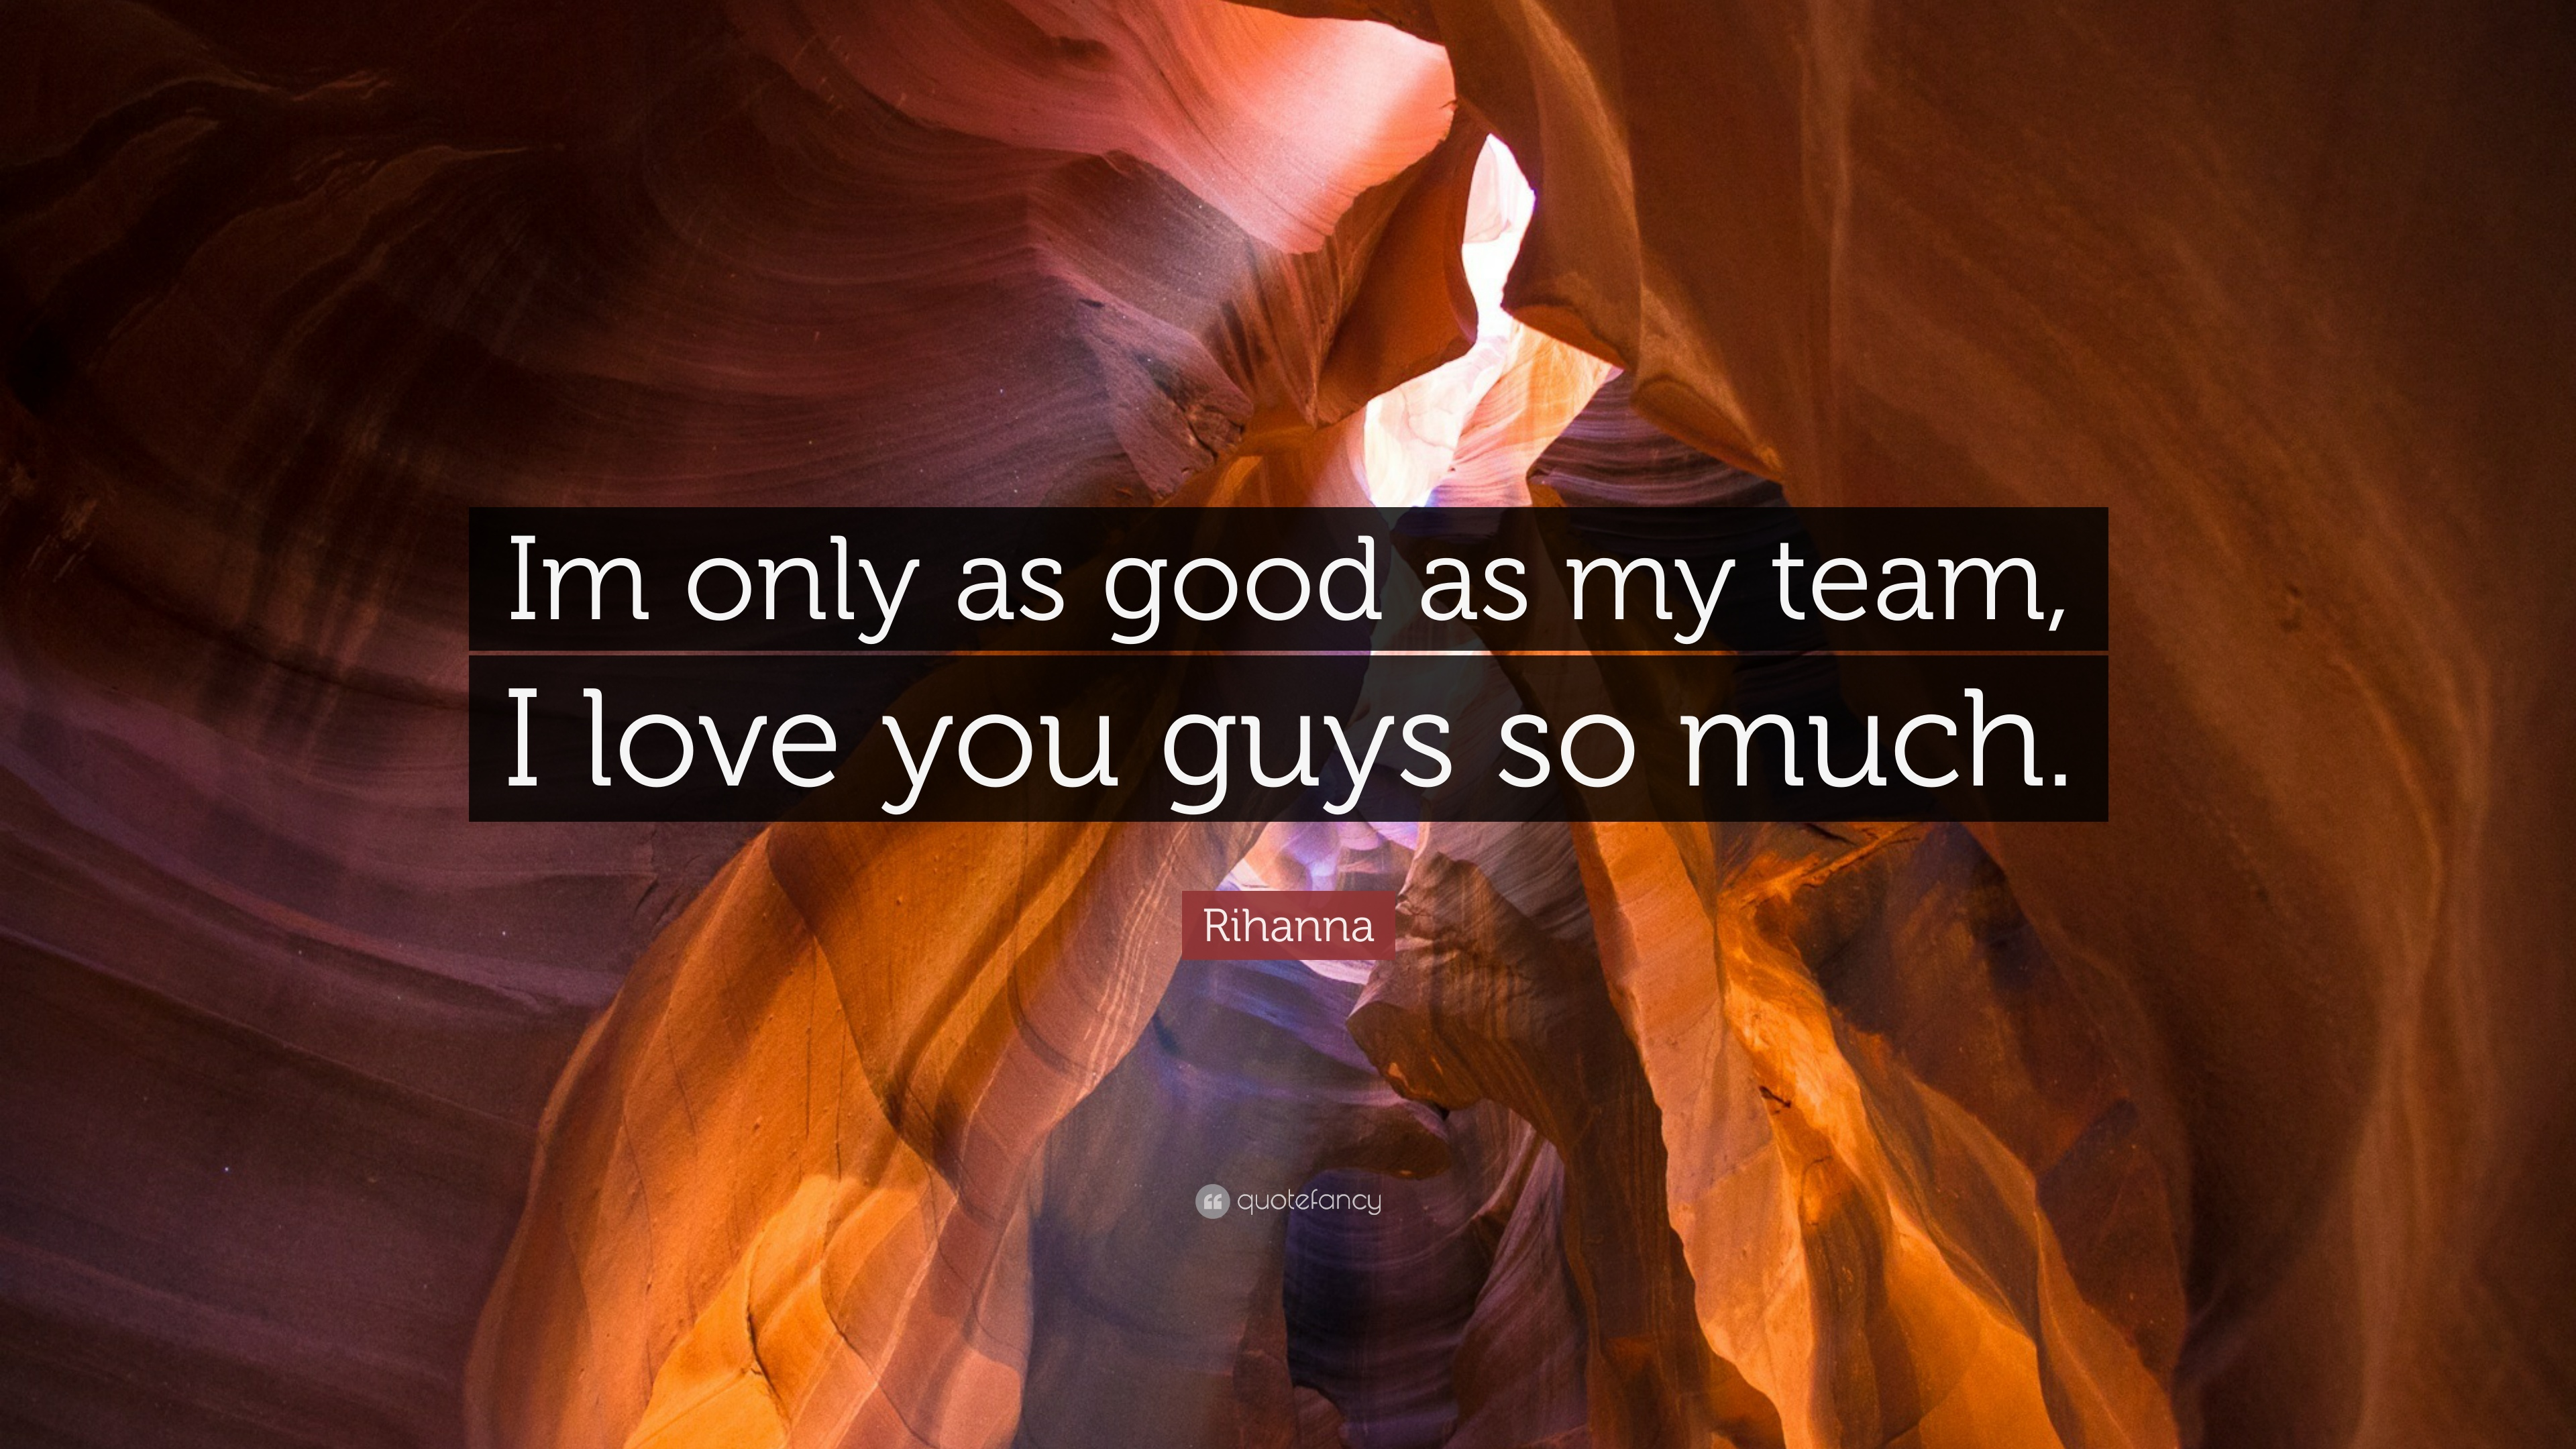 Rihanna Quote: Im only as good as my team, I love you